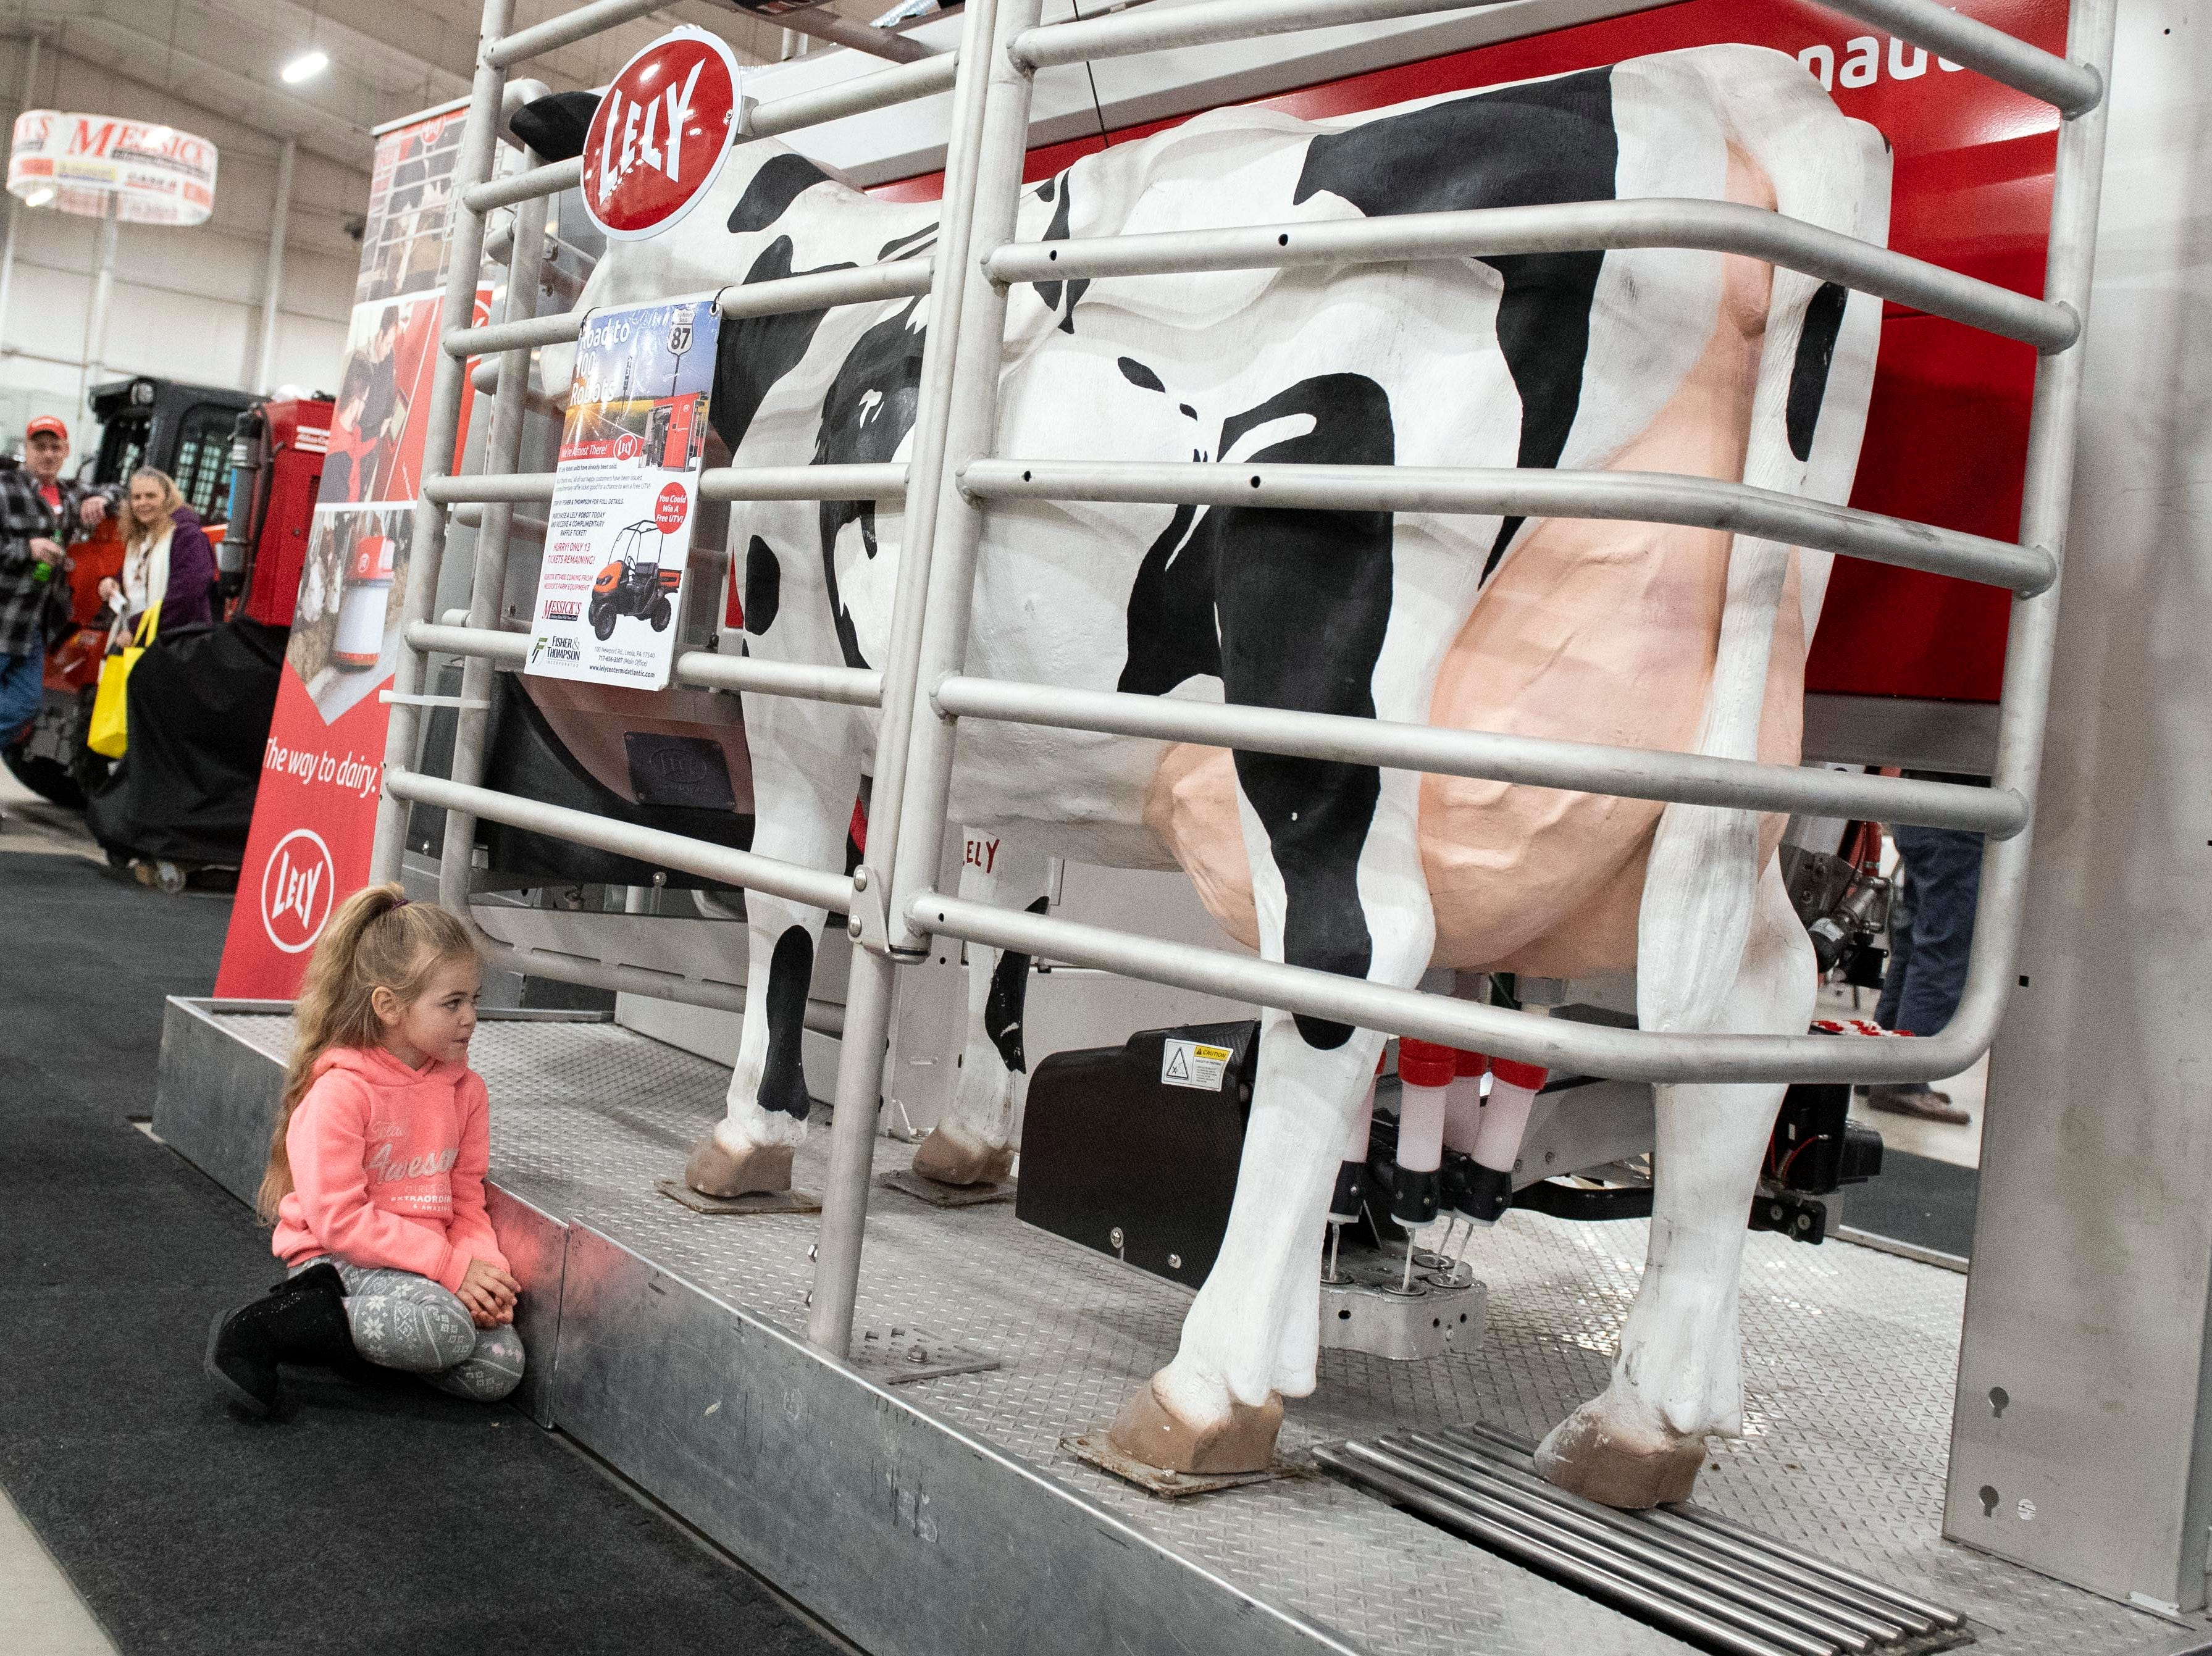 A little girl watches as a simulation demonstrates how a robotic milking machine works, Tuesday, Jan. 8, 2019. The Keystone Farm Show has nearly 420 vendors and is expected to bring up to 15,000 people to the York Expo Center. The show runs through Thursday, Jan. 10.